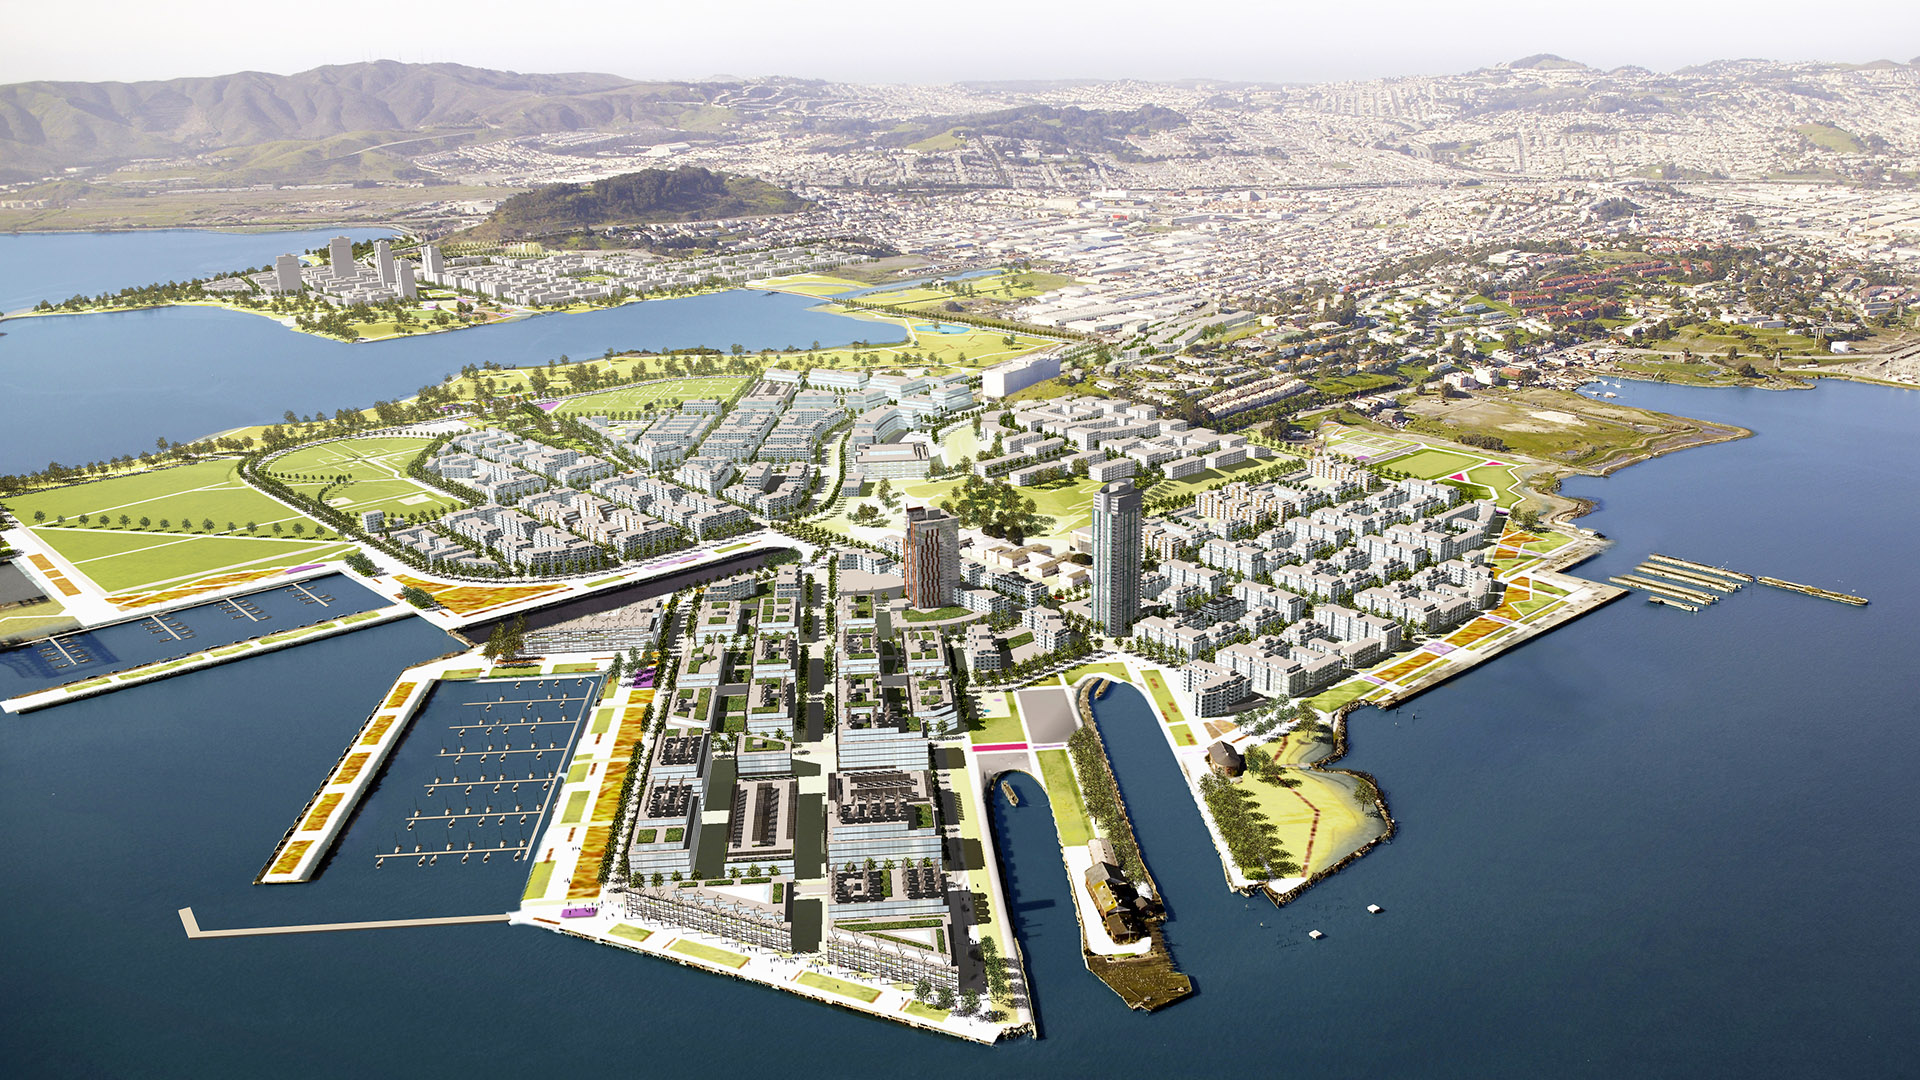 HUNTERS POINT SHIPYARD AND CANDLESTICK DEVELOPMENT